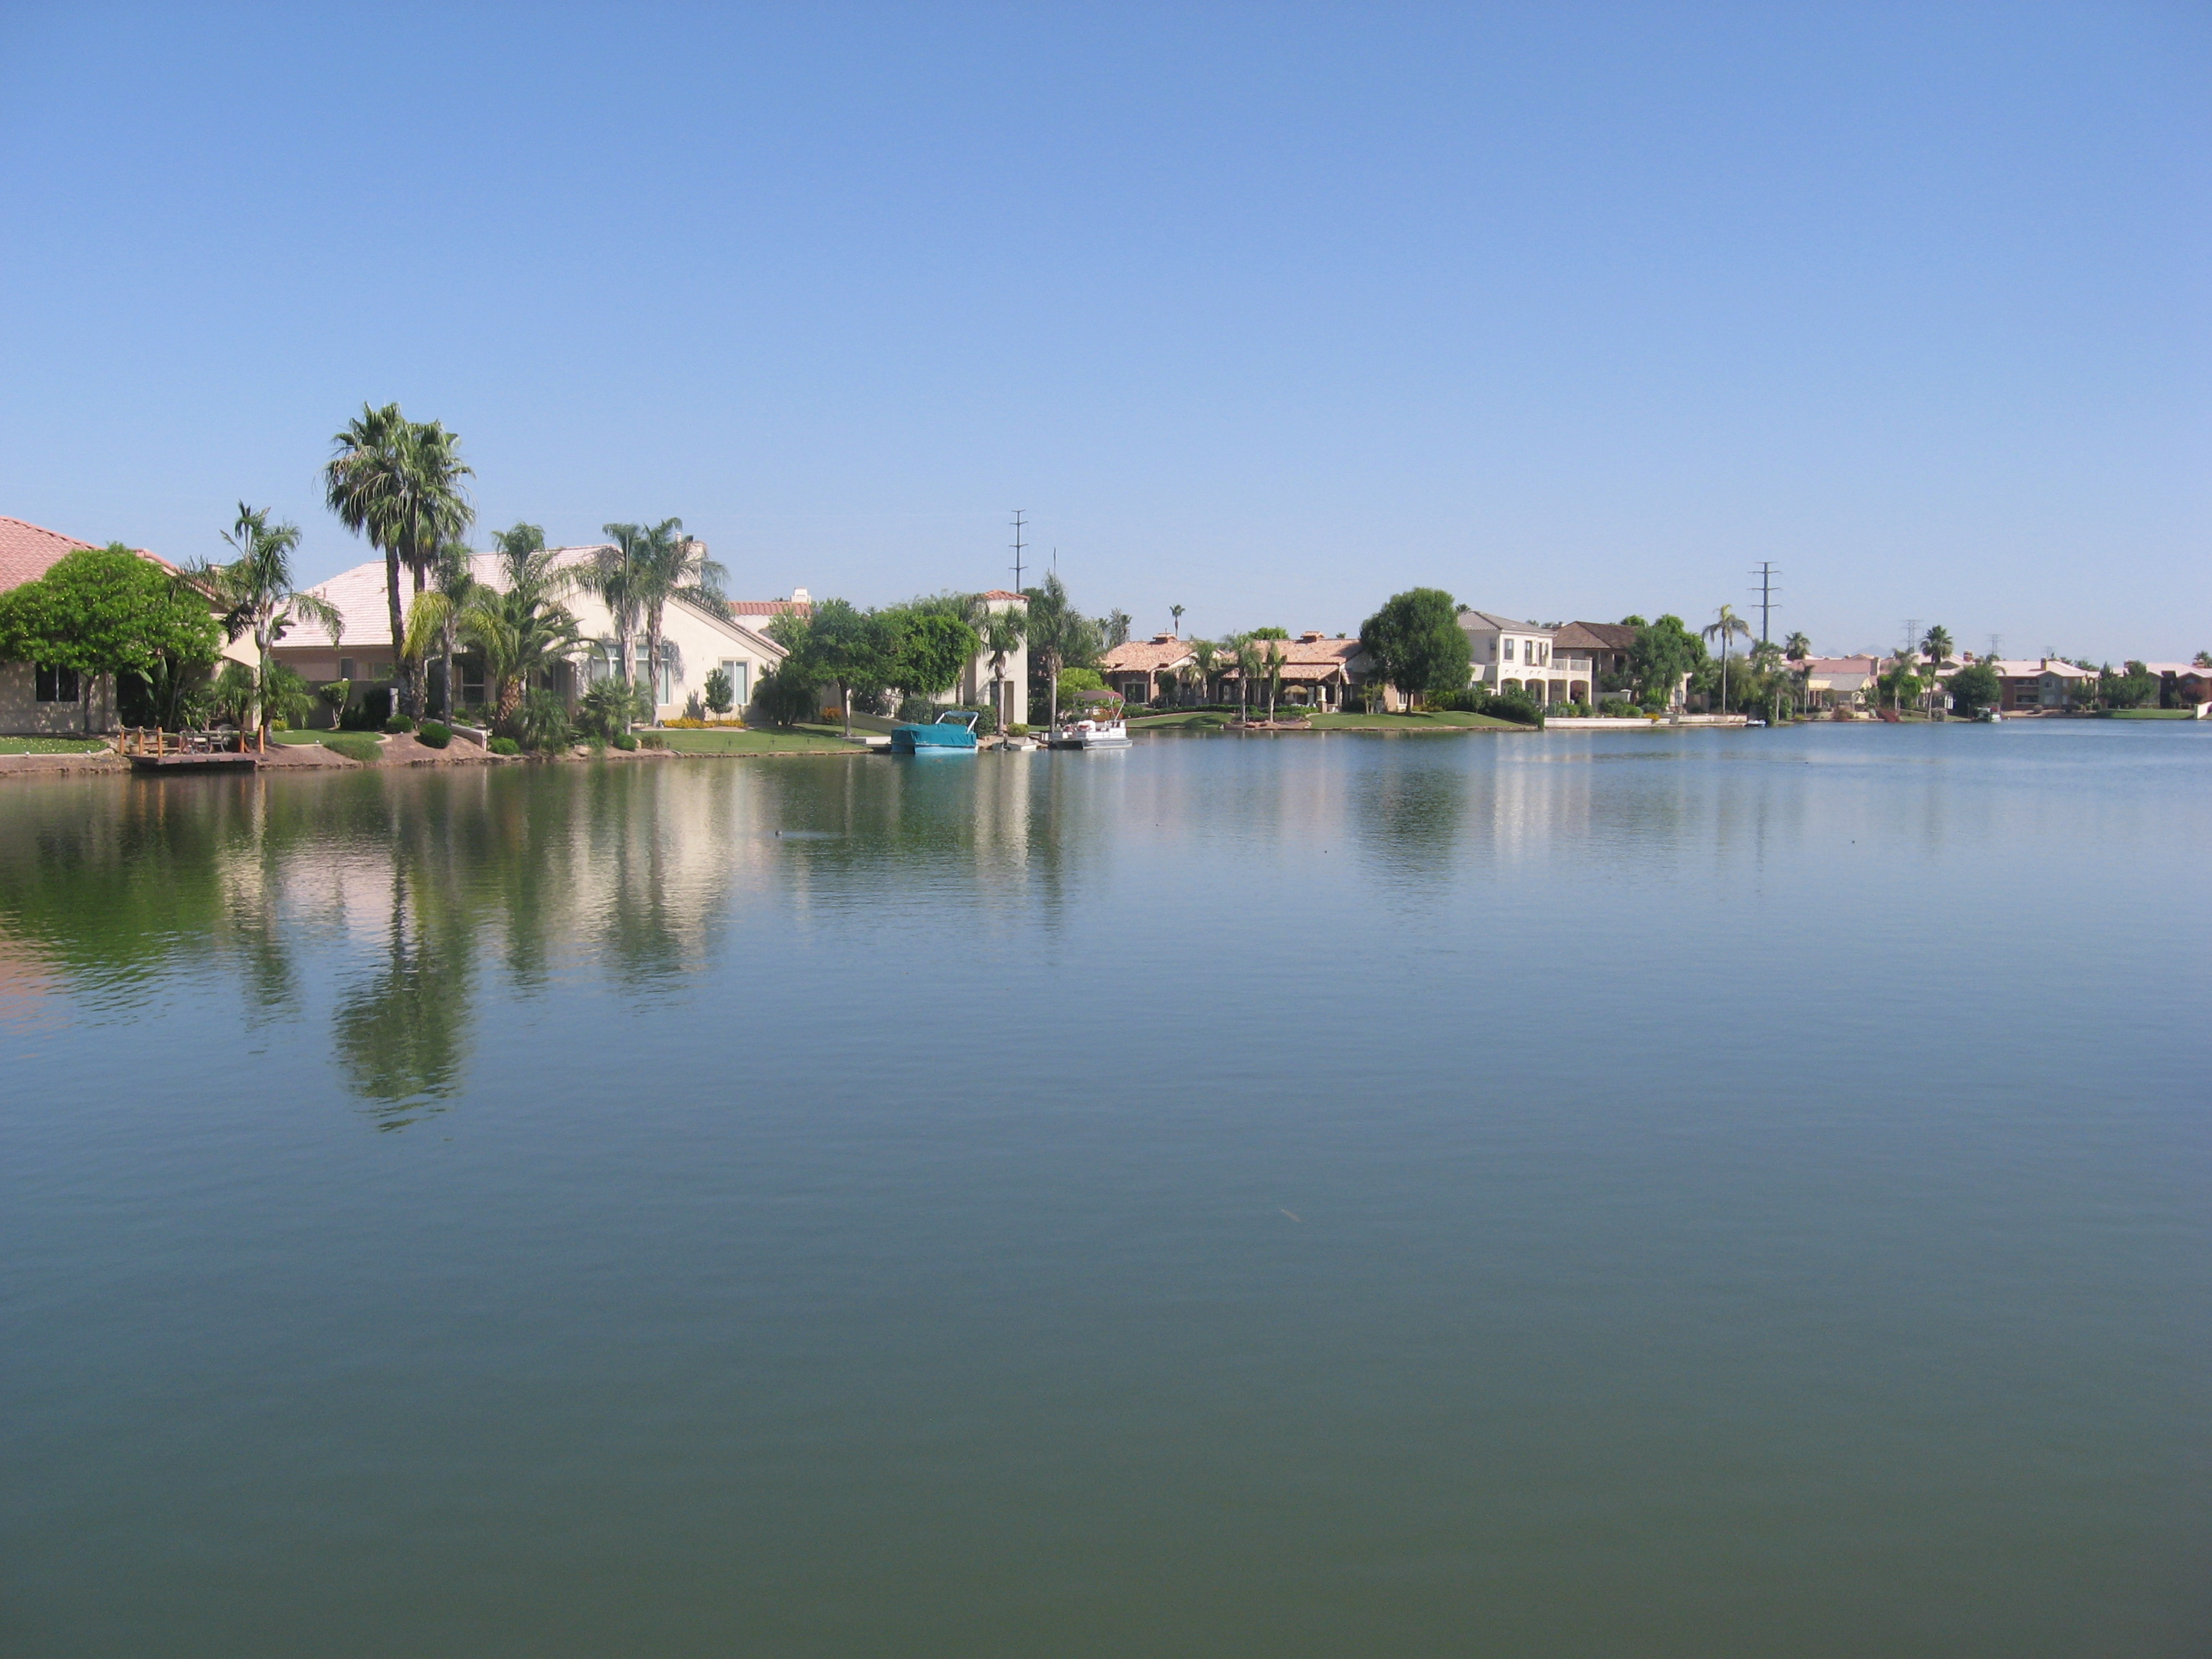 Picture of lake front in Val Vista Lakes in Gilbert, Arizona, USA.jpg